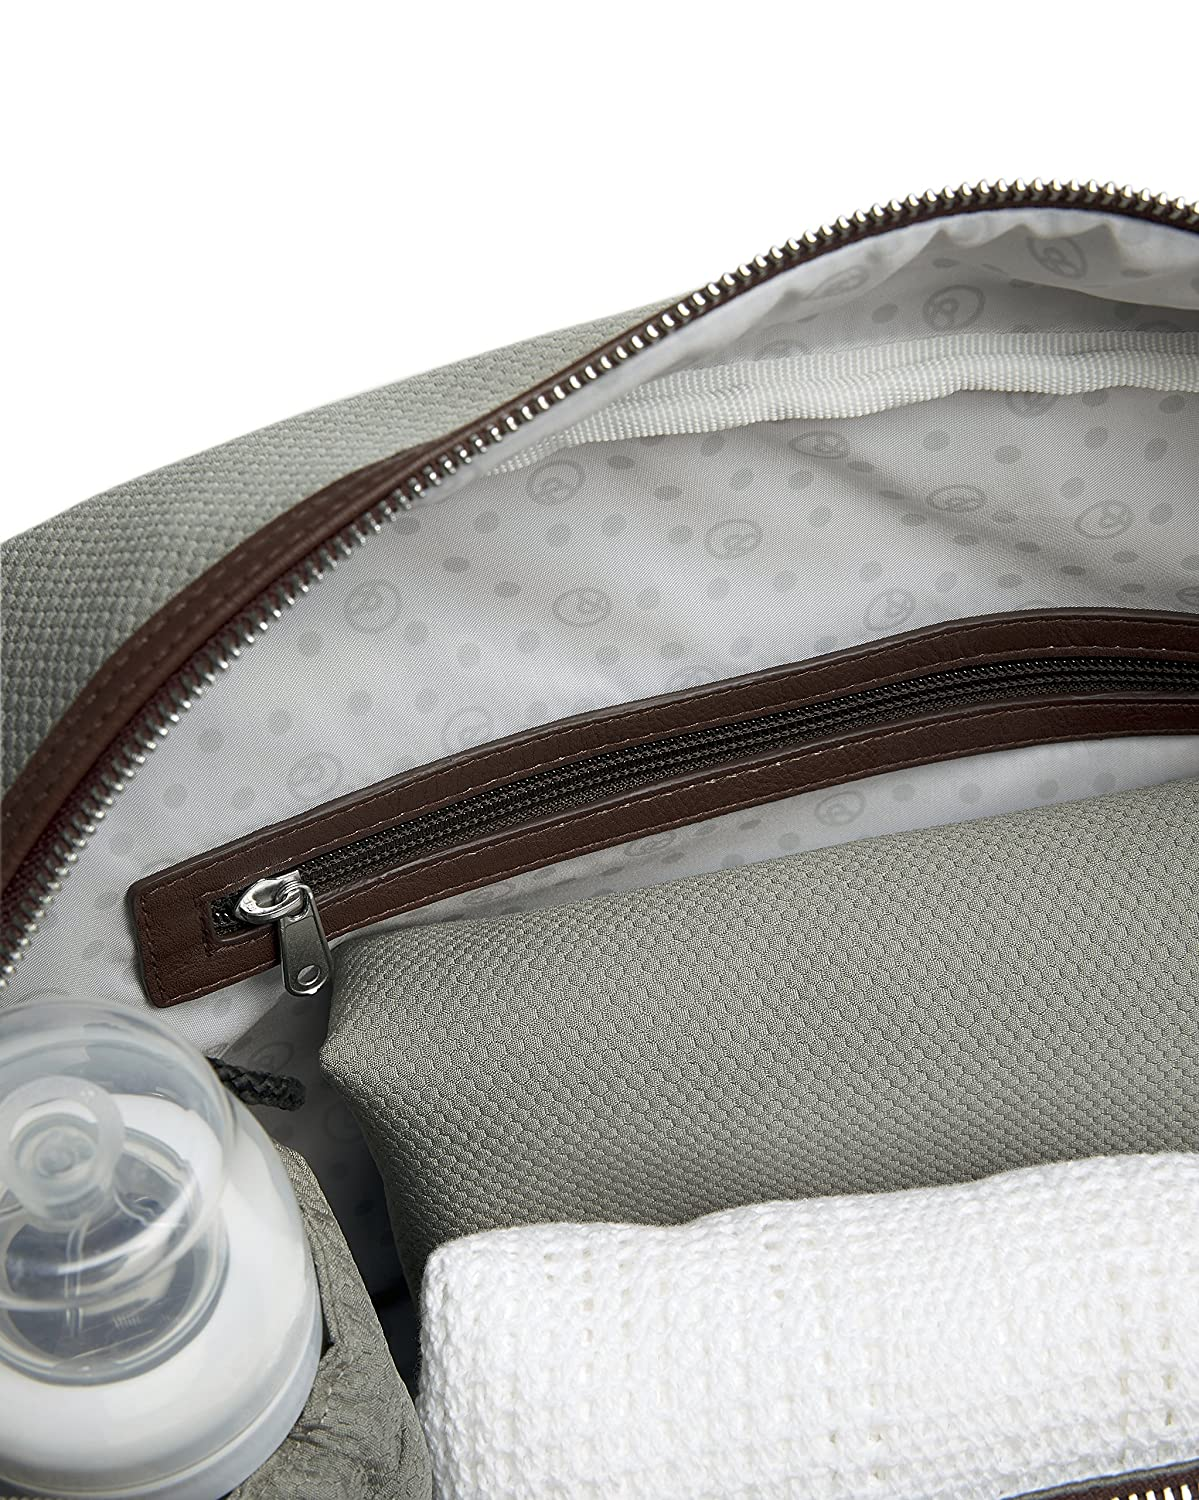 Baby Changing Bag Mamas /& Papas Bowling Changing Bag Nappy Changing Bag Chestnut Pram//Pushchair//Buggy Accessories